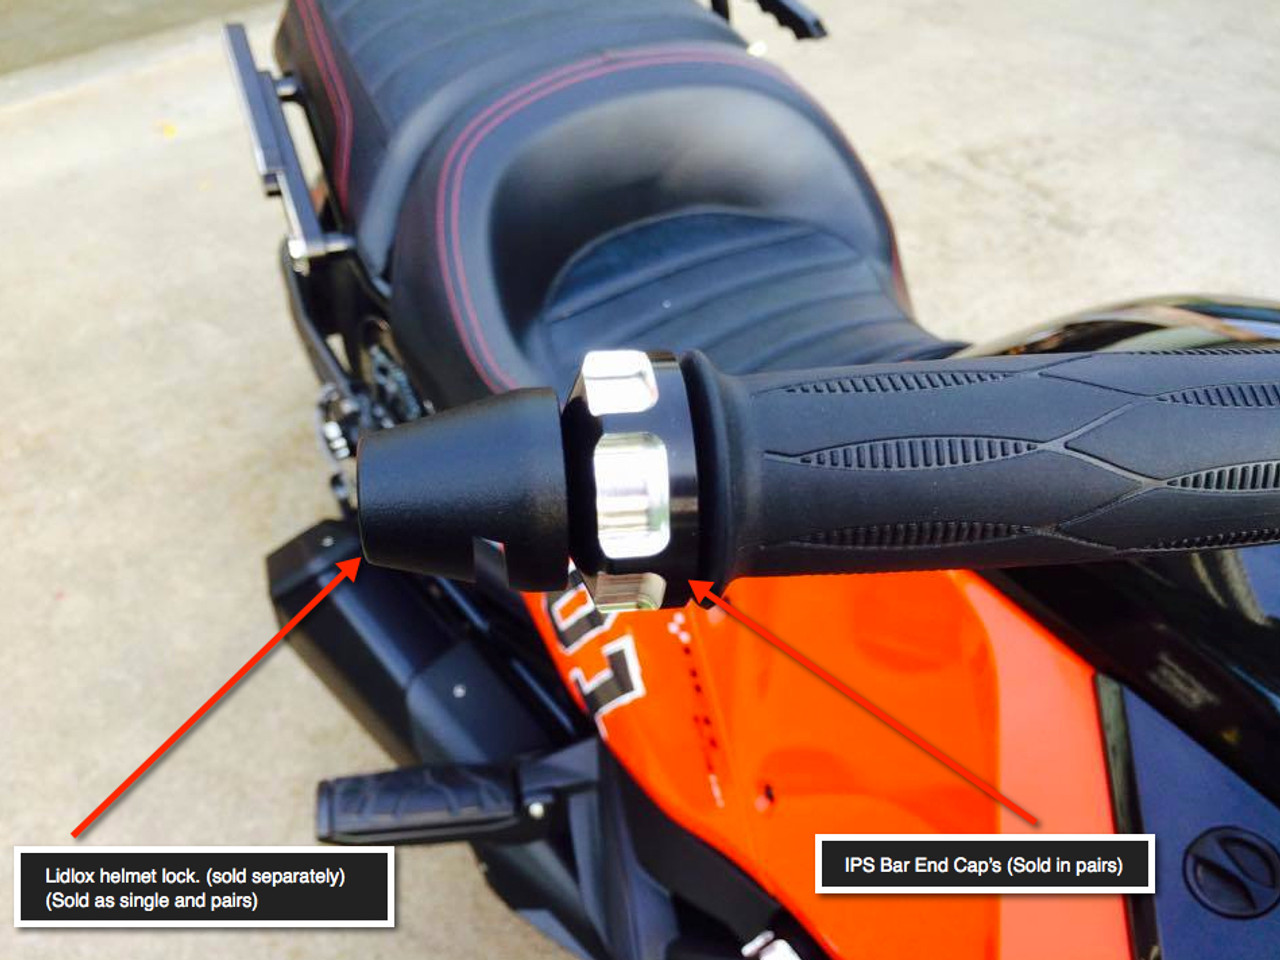 Can Am Spyder IPS Bar End Caps (LG-1015) by Lamonster Also Shown with Lidlox Helmet Locks (NOT INCLUDED)